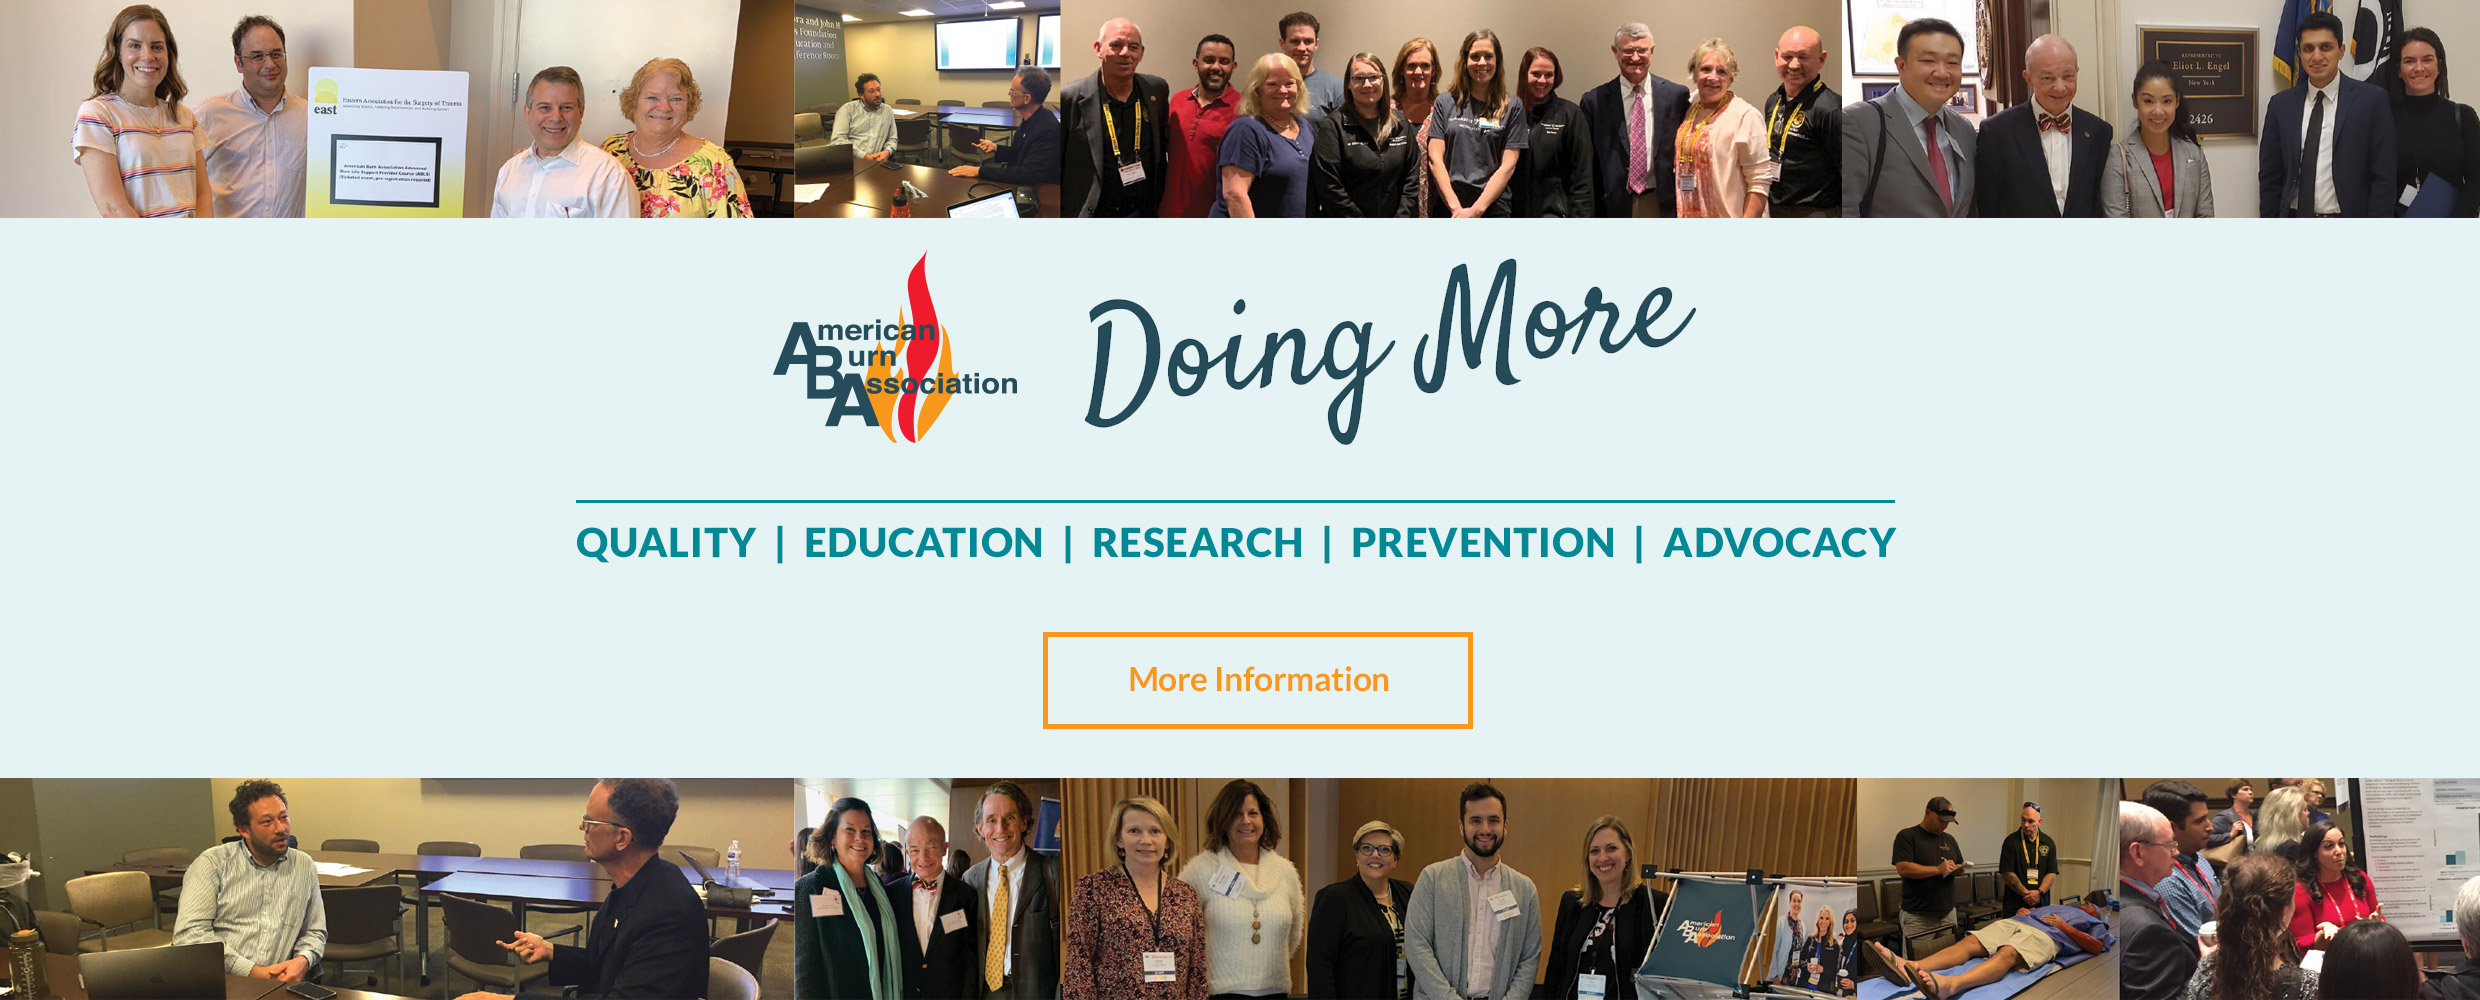 Image promoting ABA Doing More Campaign, click for more information